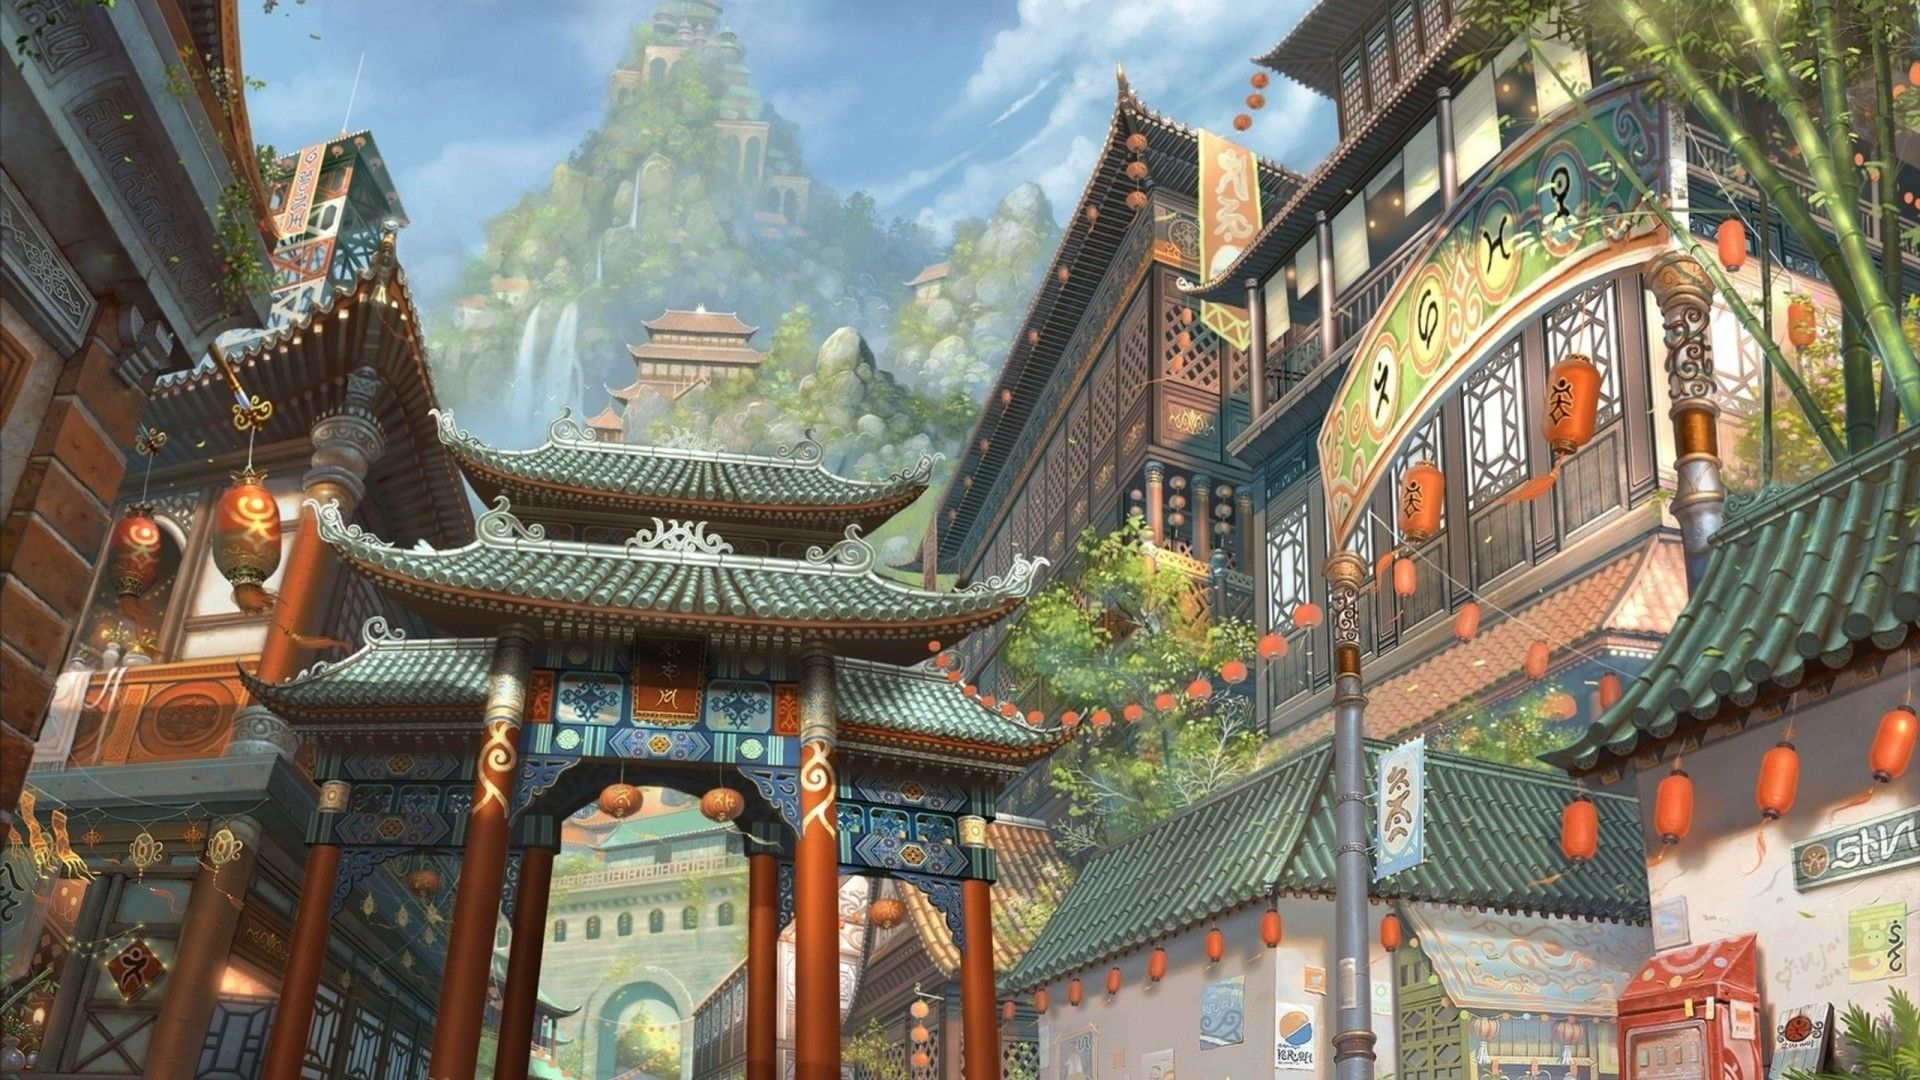 Japanese Painting Wallpapers Free For Hd Wallpaper Desktop 1920x1080 Px 561 16 Kb Concept Art Fantastique Paysages D Art Fantastique Paysage Asiatique